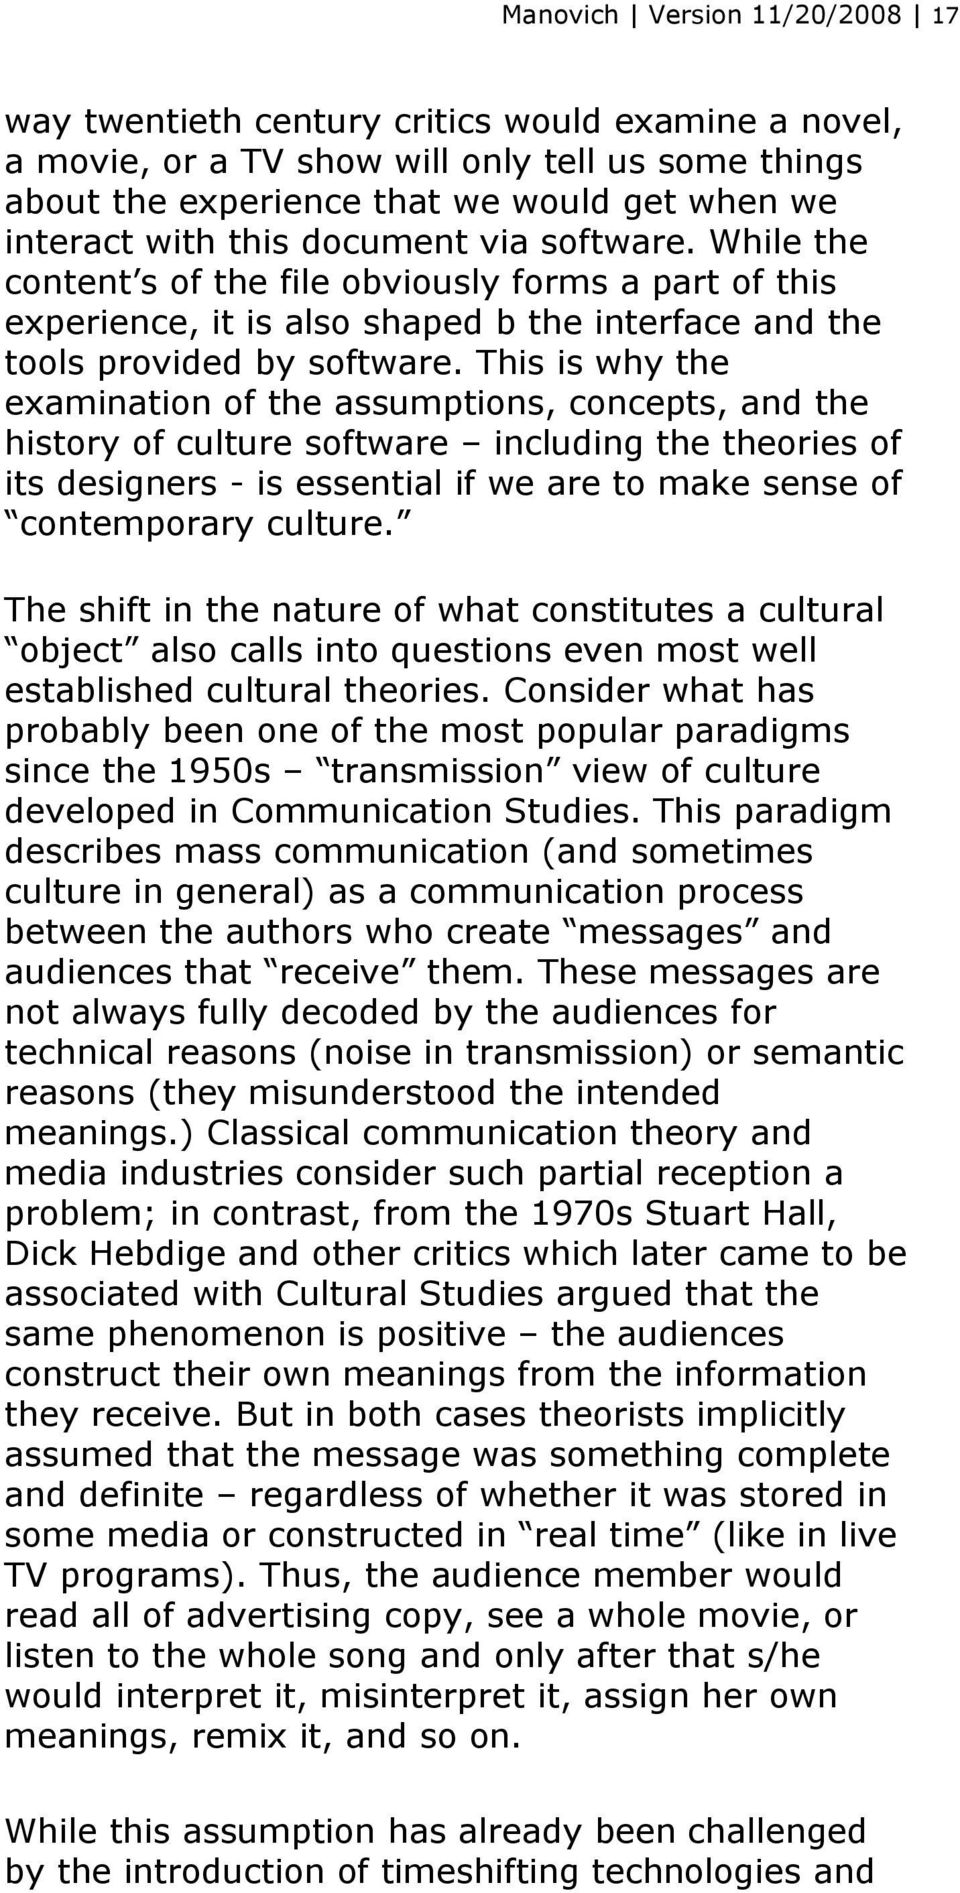 This is why the examination of the assumptions, concepts, and the history of culture software including the theories of its designers - is essential if we are to make sense of contemporary culture.